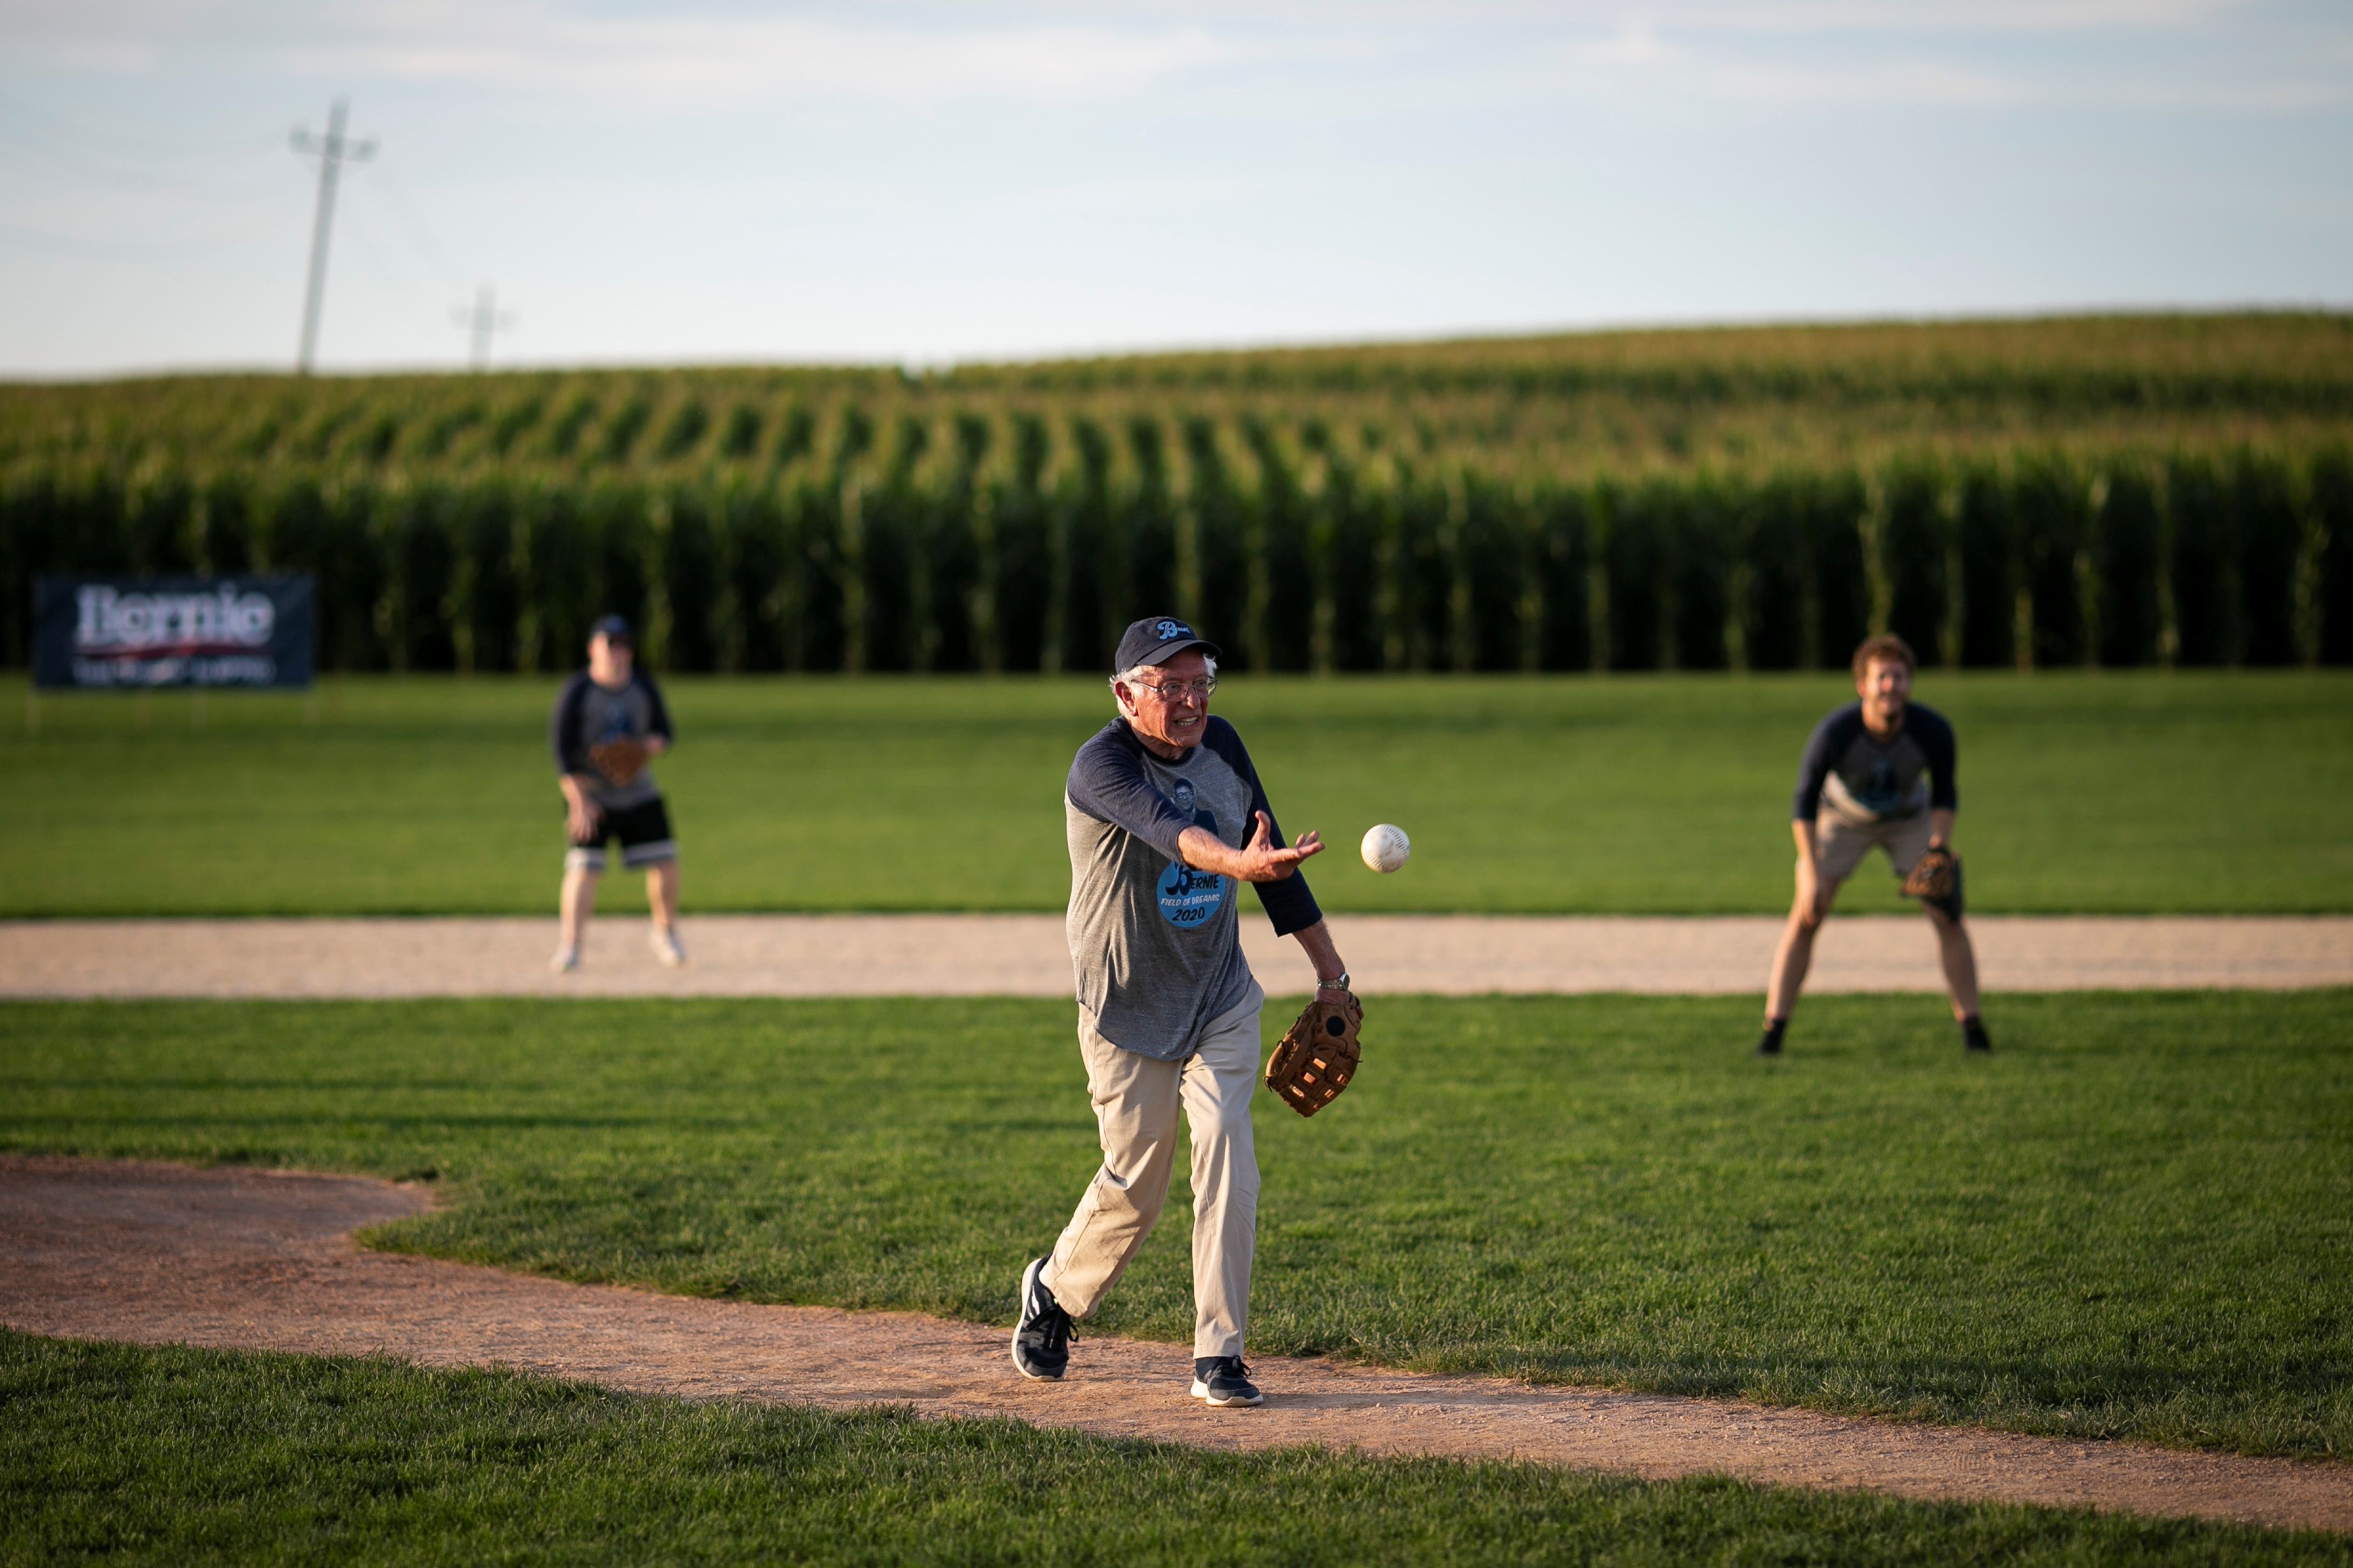 """2020 Democratic U.S. presidential candidate and U.S. Senator Bernie Sanders pitches during a baseball game between his staff, """"The Revolutionaries,"""" and the Leaders Believers Achievers Foundation. U.S., August 19, 2019. REUTERS/Al Drago"""